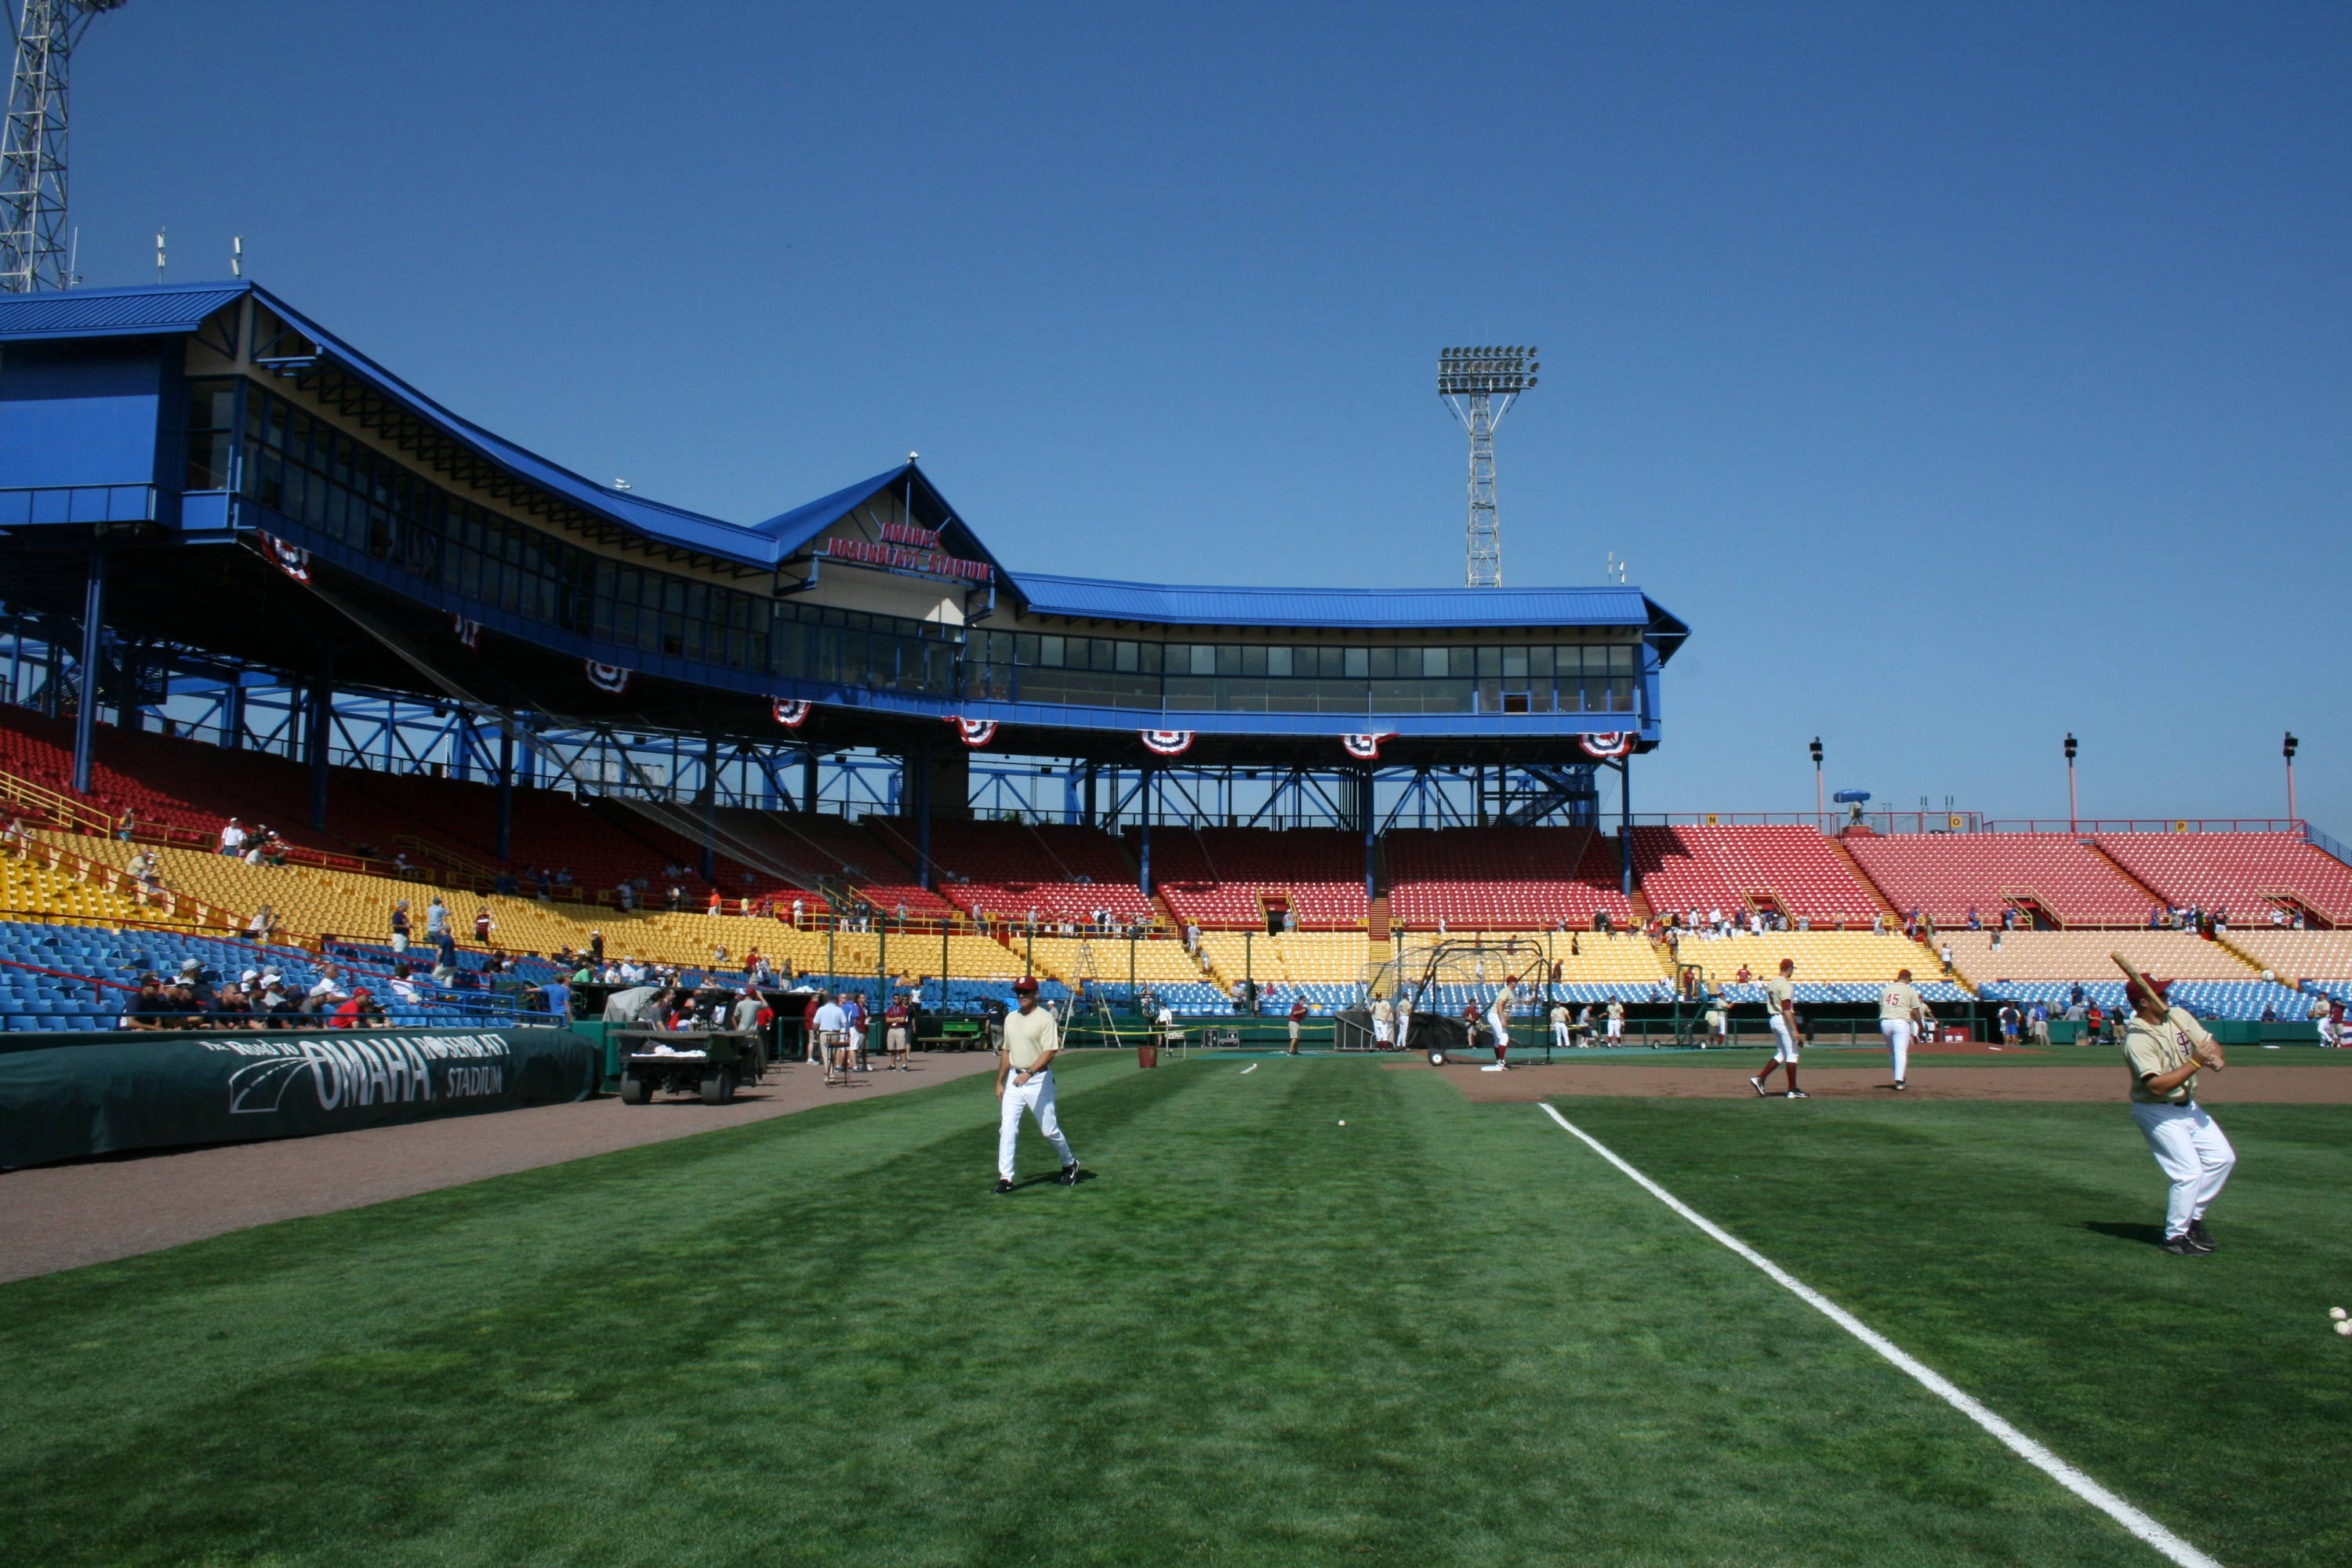 Practice day inside Rosenblatt Stadium